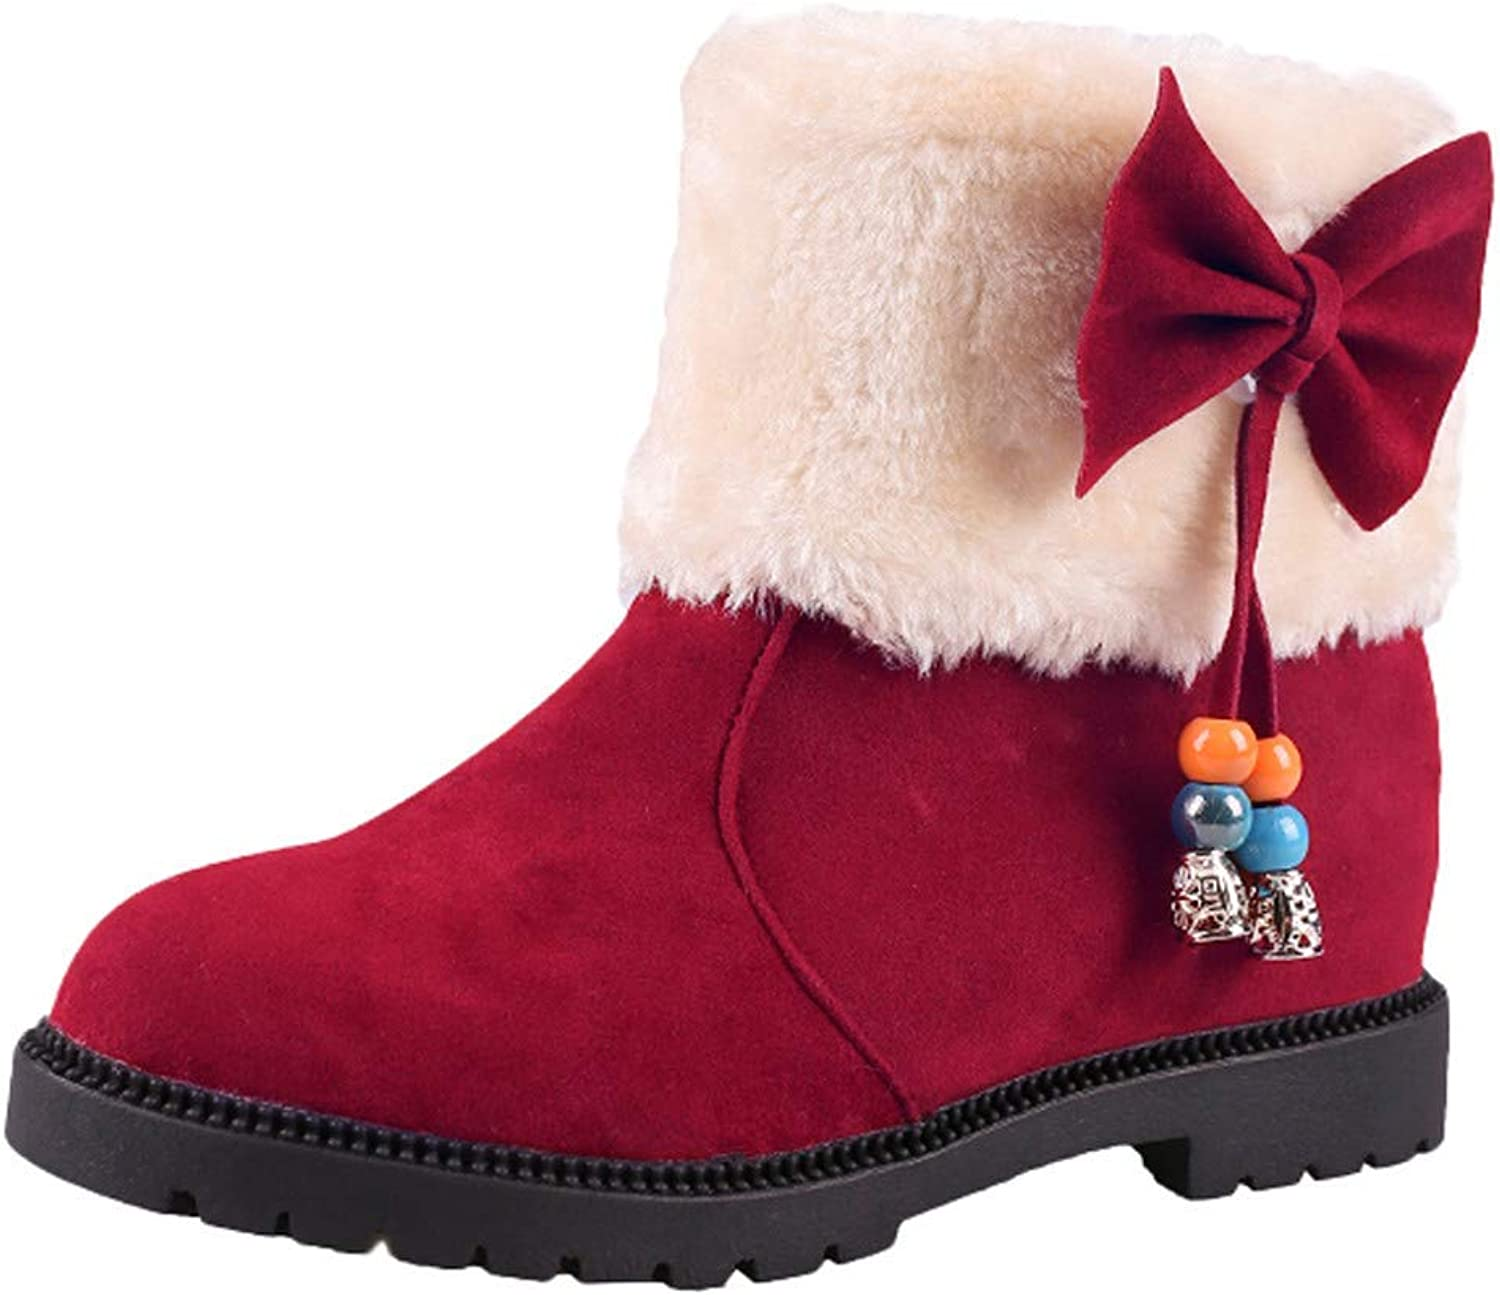 JaHGDU Women's Suede Loop Round Toe Wedges shoes Keep Warm Slip On Snow Cotton Boots Wild Tight Casual Quality Super Elegant Leisure for Womens Red Black